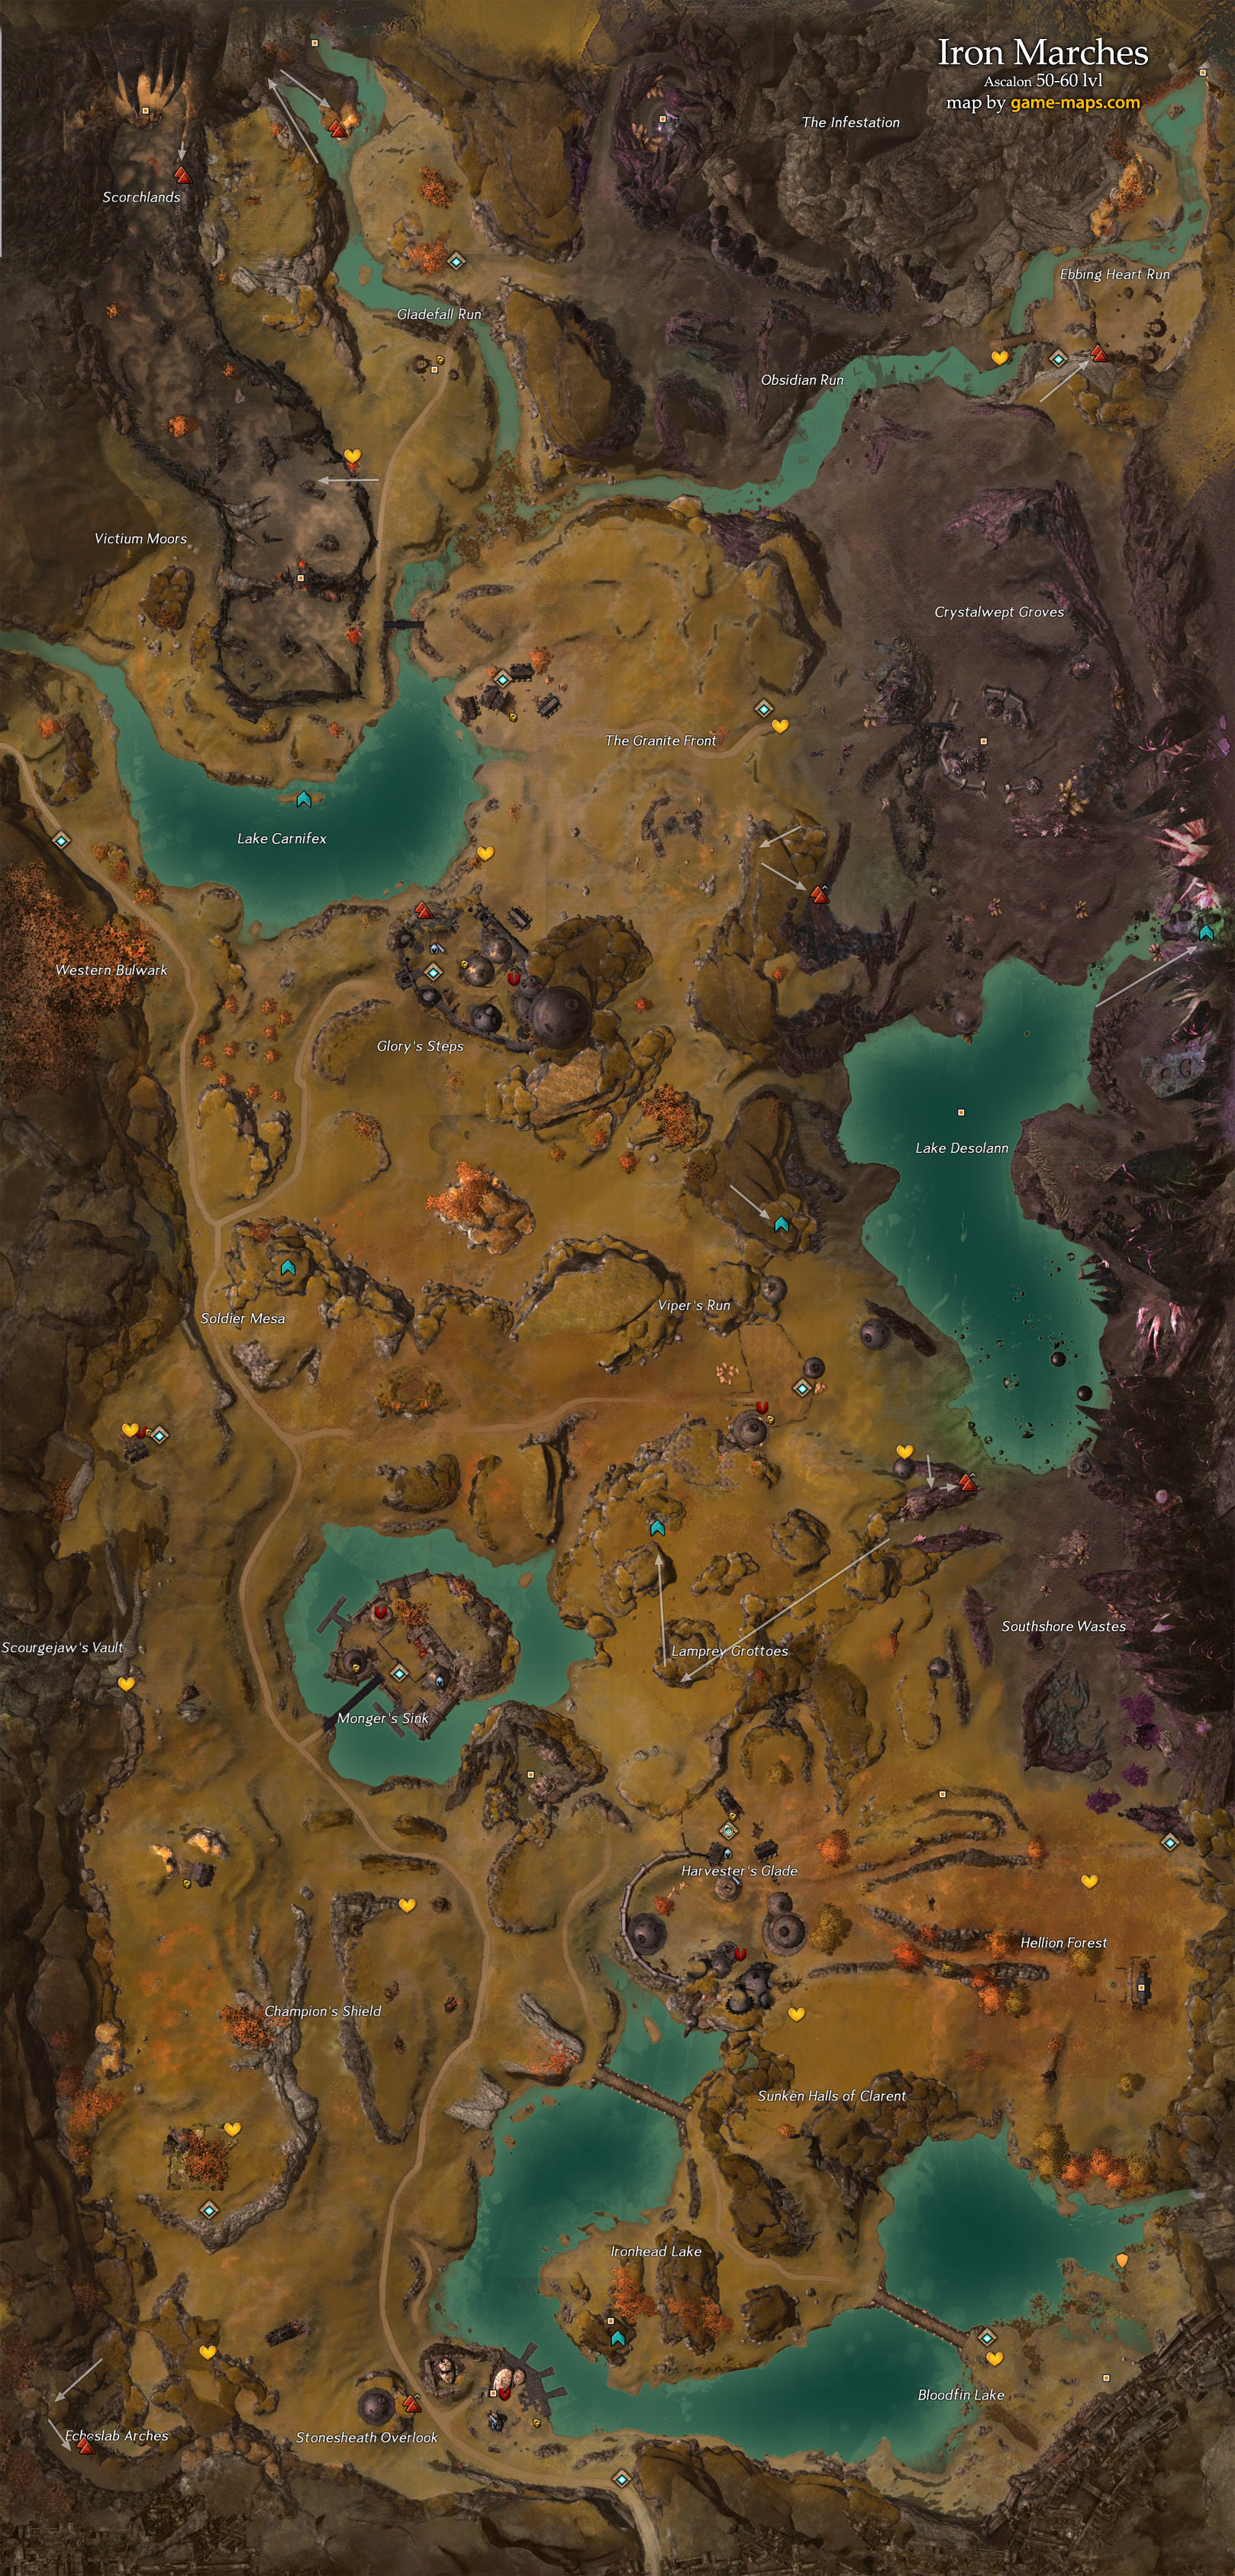 Iron Marches Map Guild Wars 2 Game Mapscom